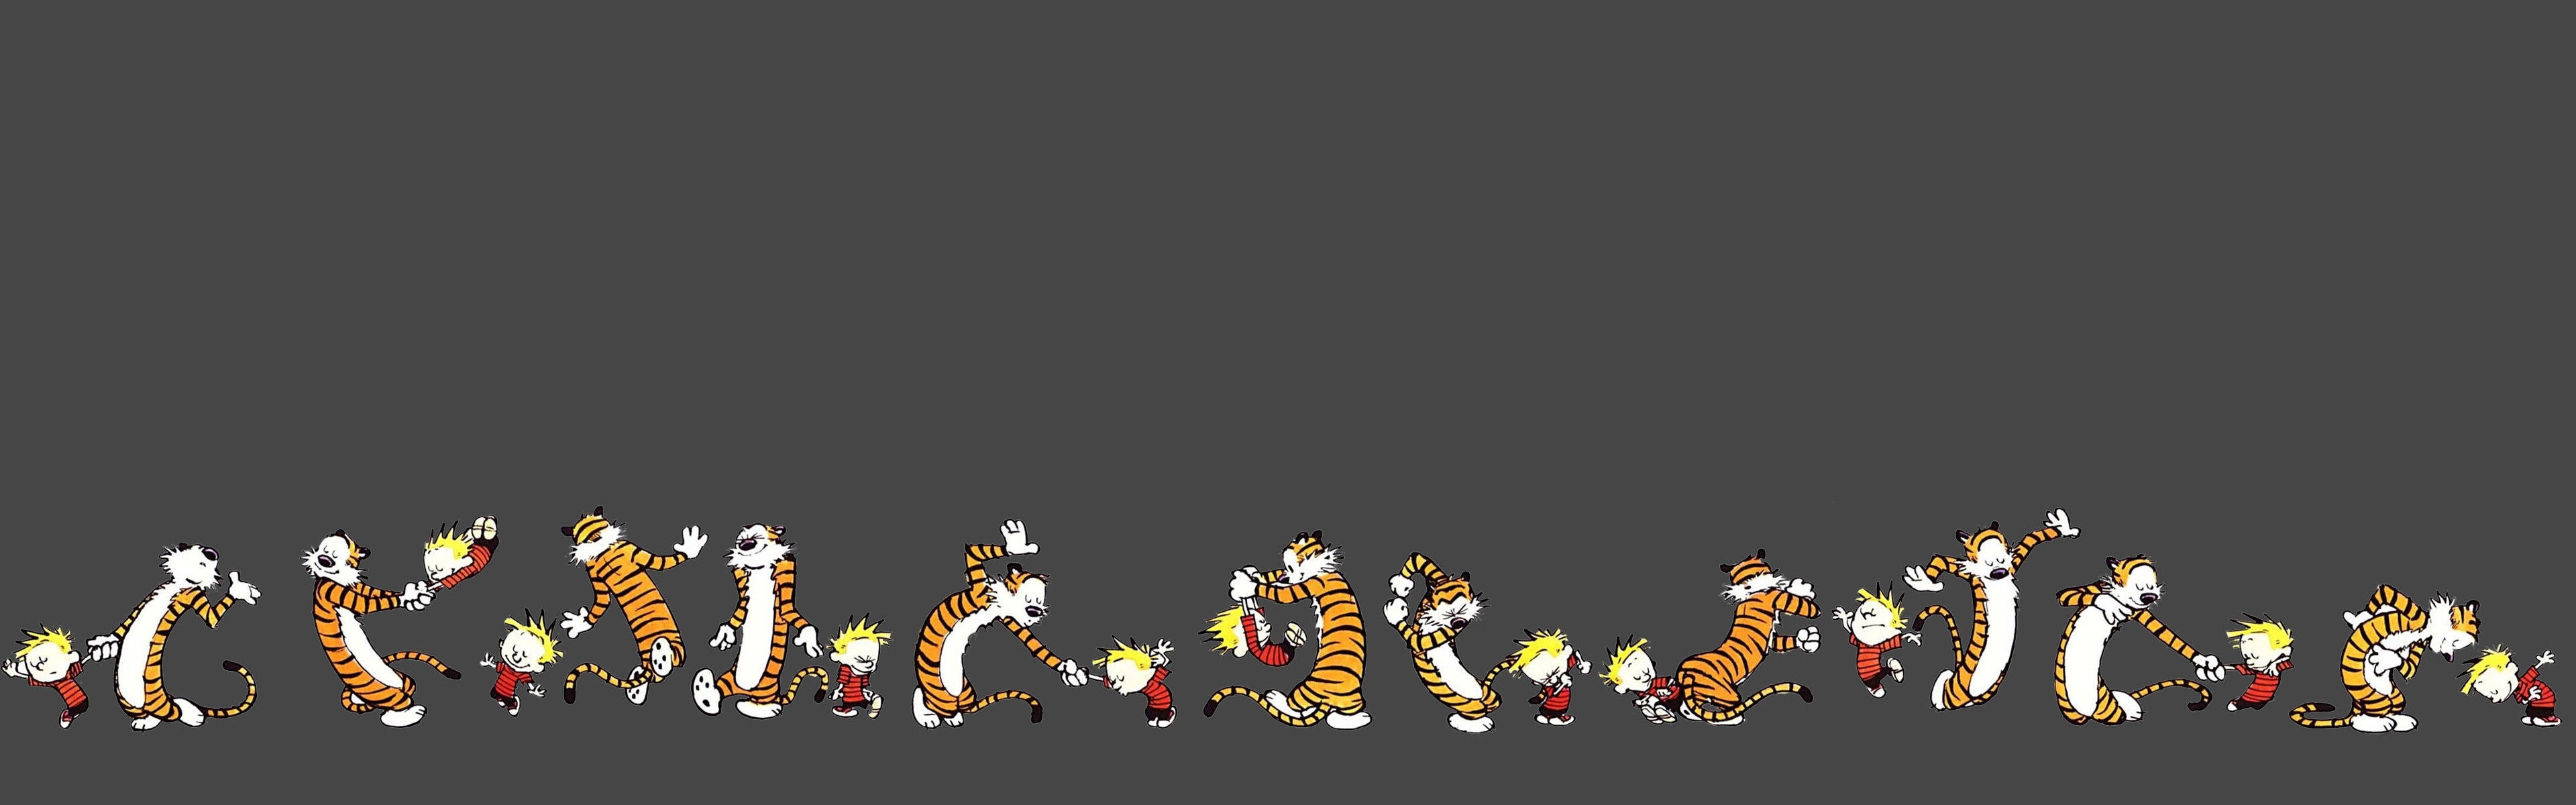 General 3840x1200 Calvin and Hobbes comics minimalism dual monitors multiple display dancing